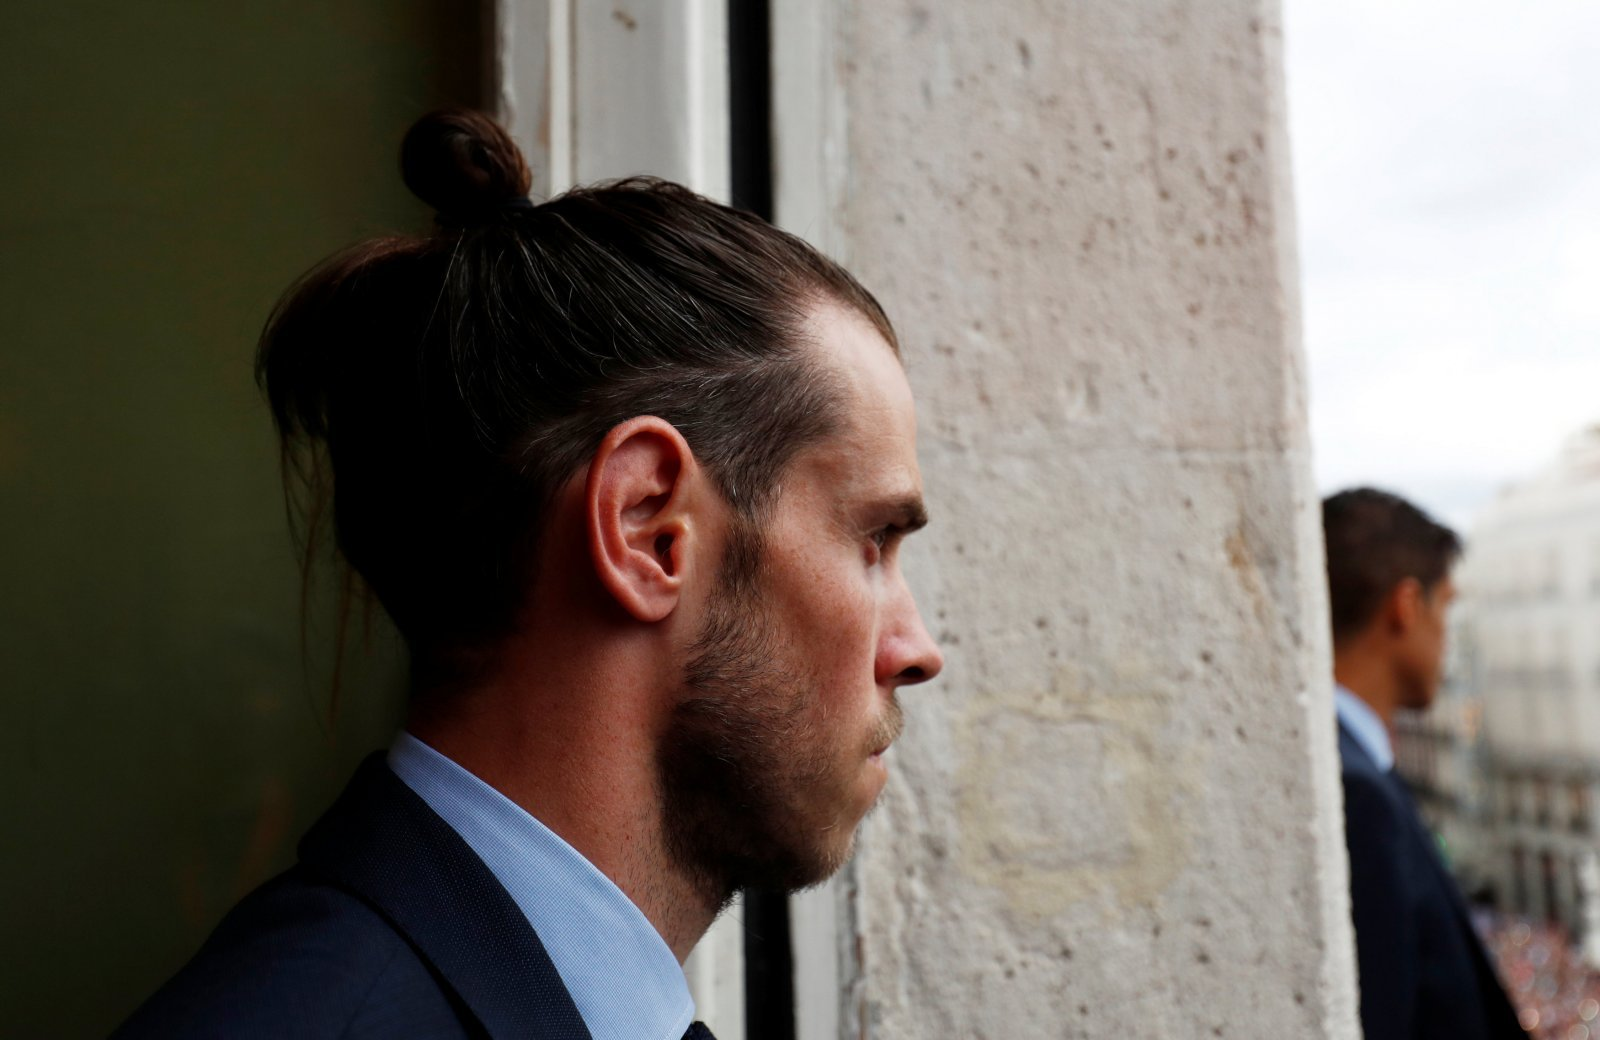 Manchester United: Harry Redknapp is right, Gareth Bale would be an amazing signing